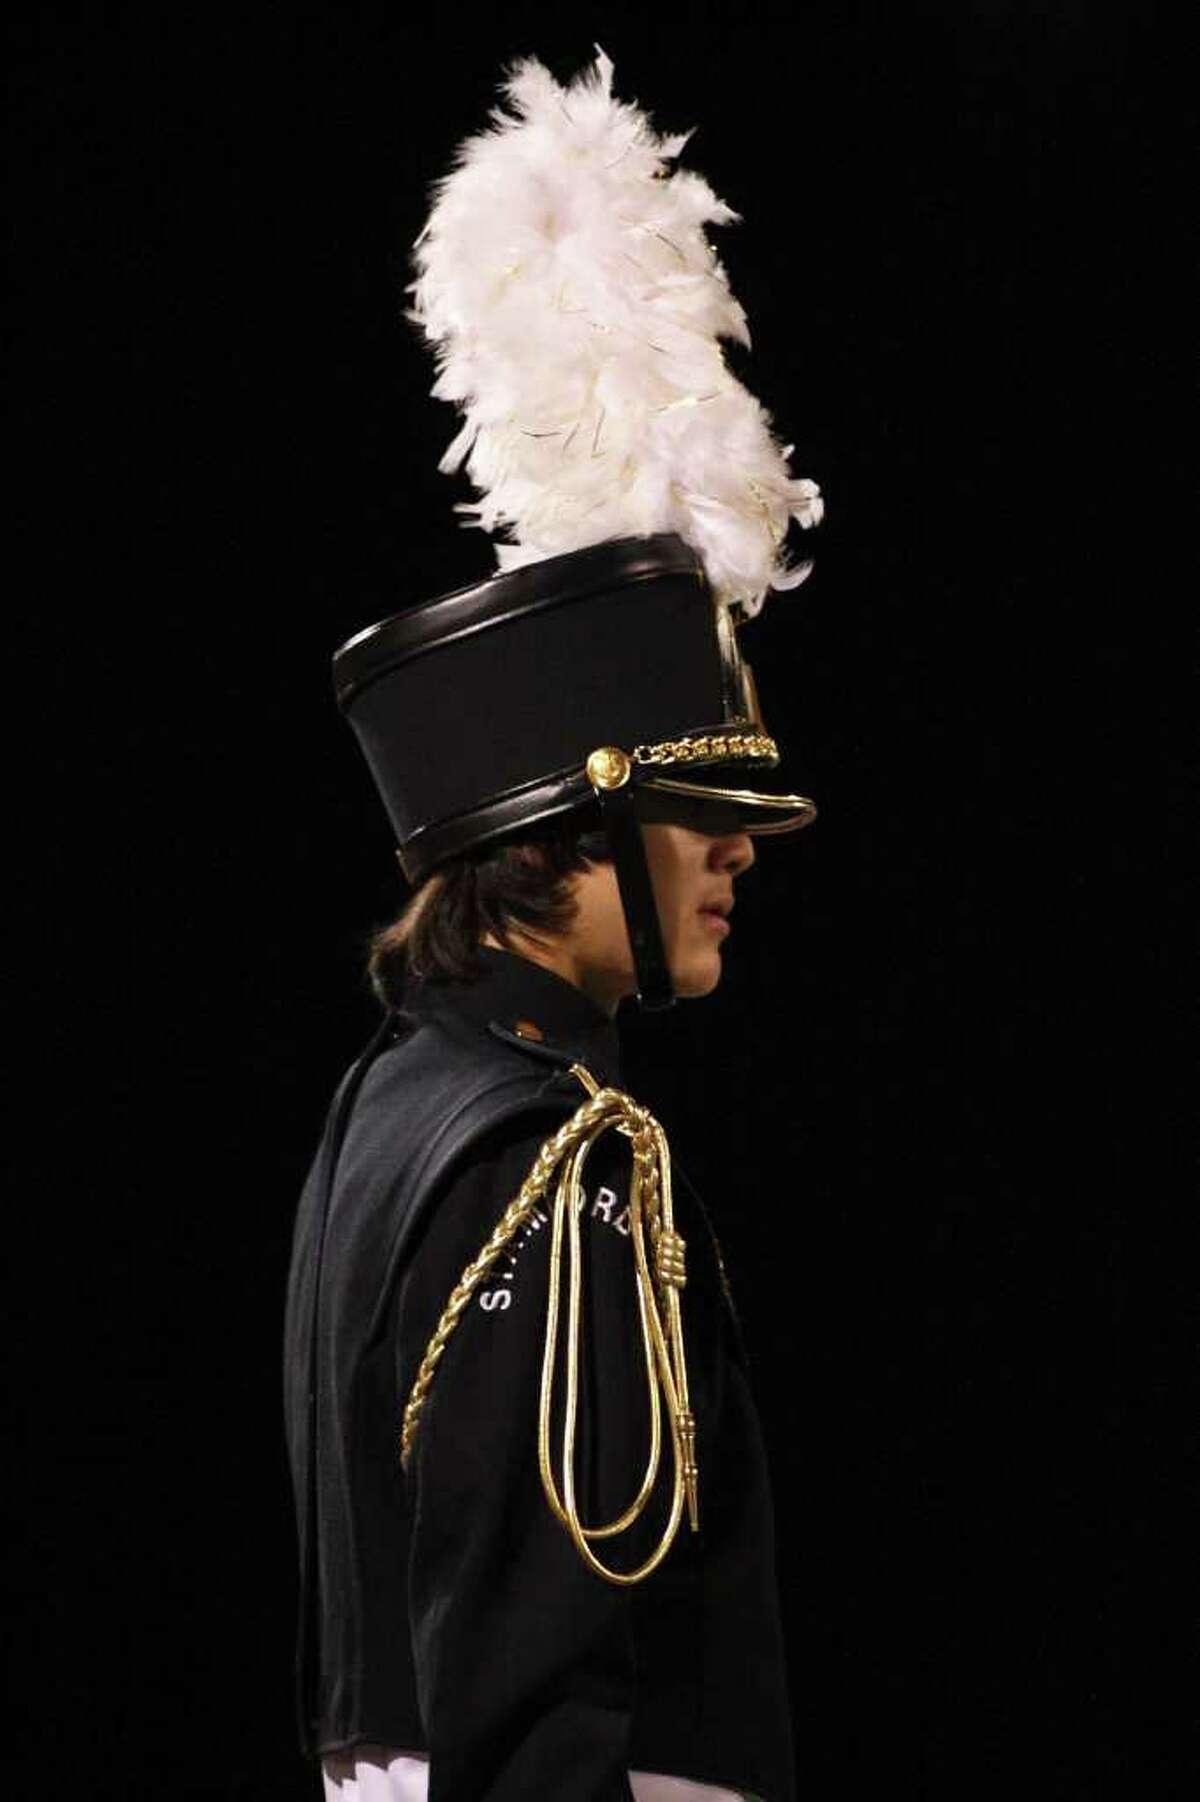 The marching band performs on Friday night at half time as Stamford play Norwalk on October 8th